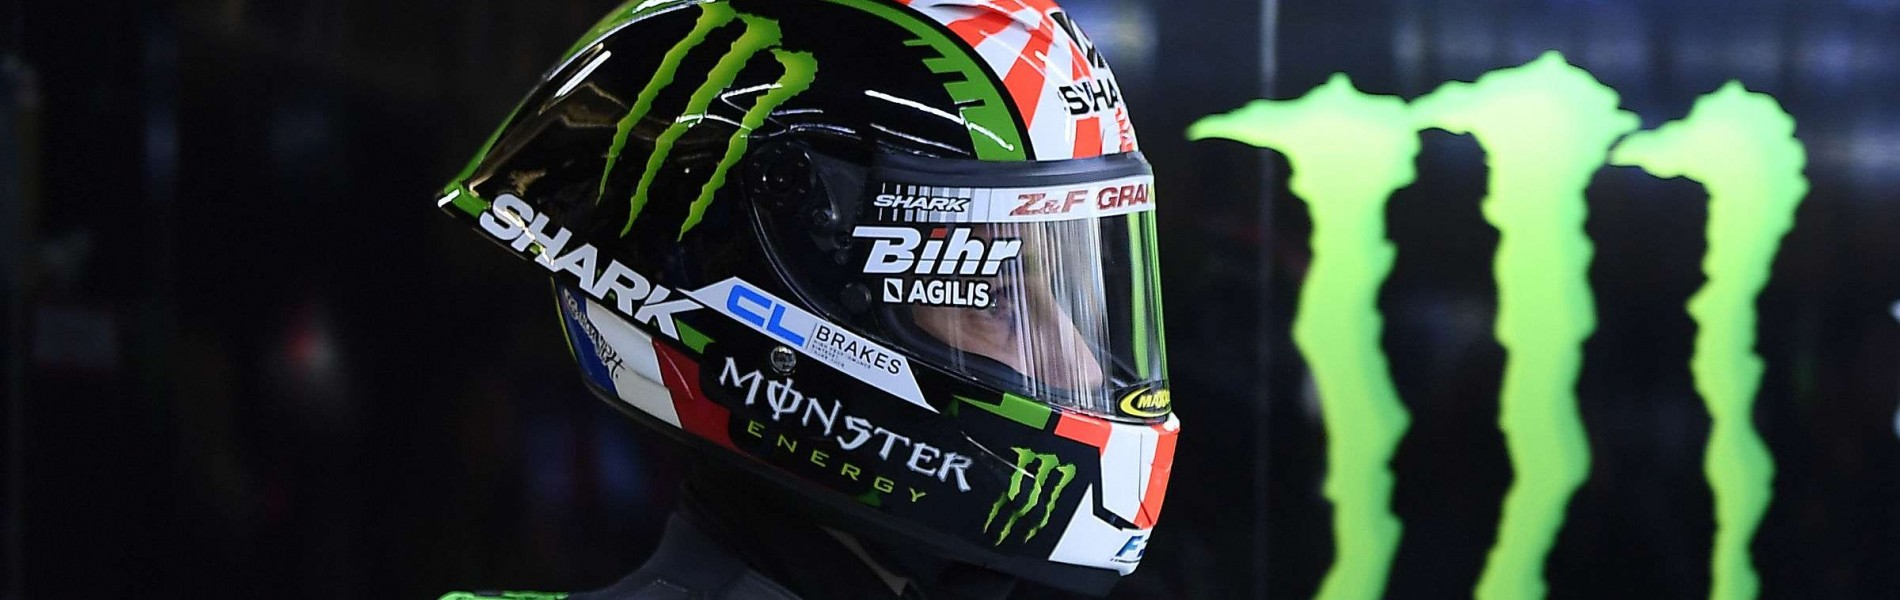 Monster athletes compete in Le Mans for MotoGP stop